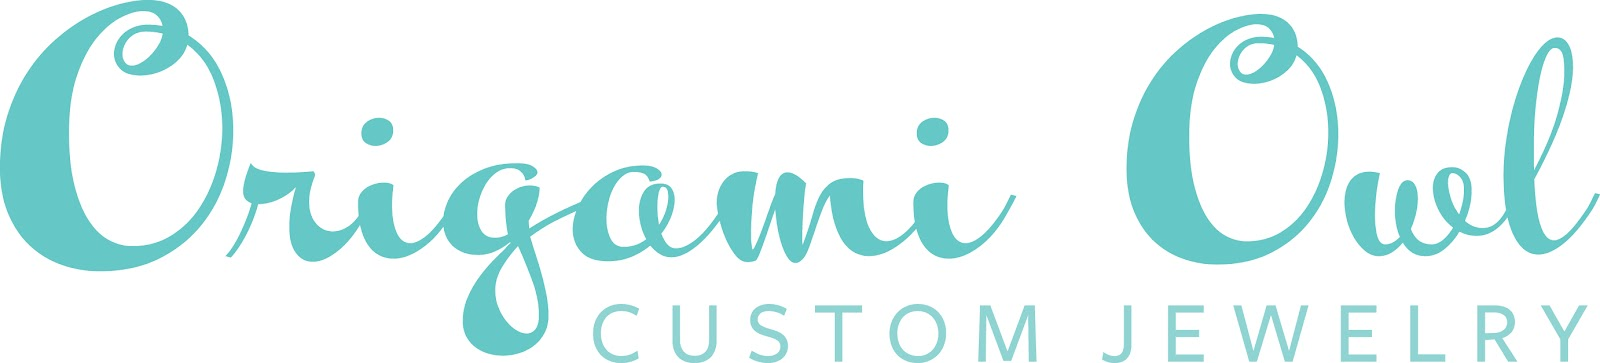 Origami Owl Custom Jewelry $50 Giveaway